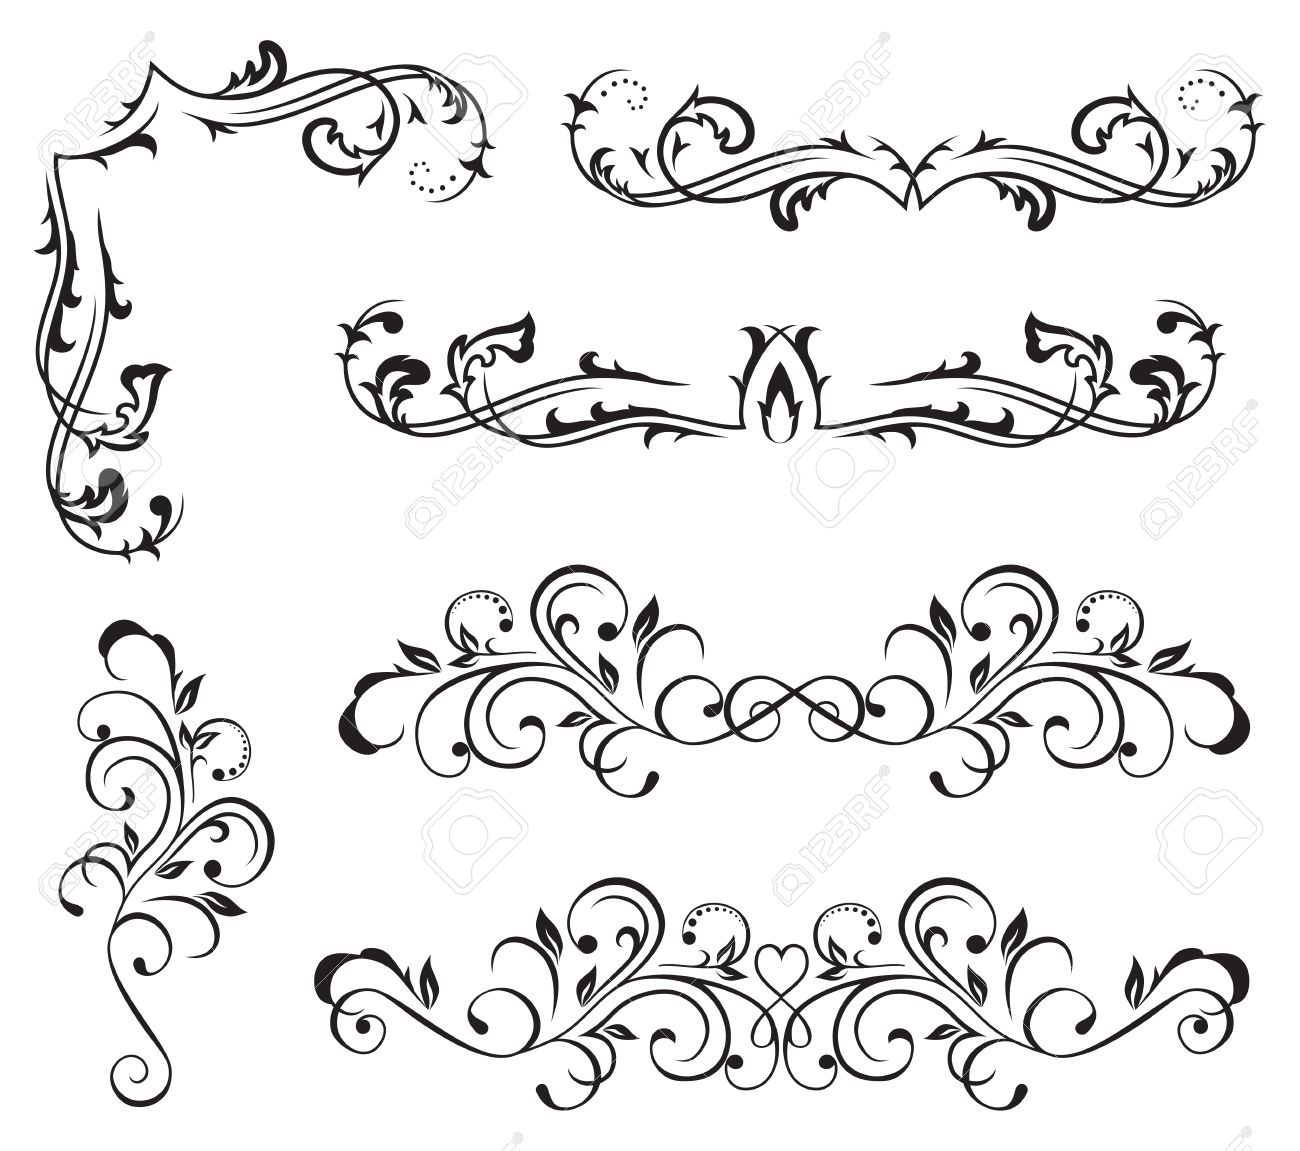 23163 Rococo Style Cliparts Stock Vector And Royalty Free Rococo